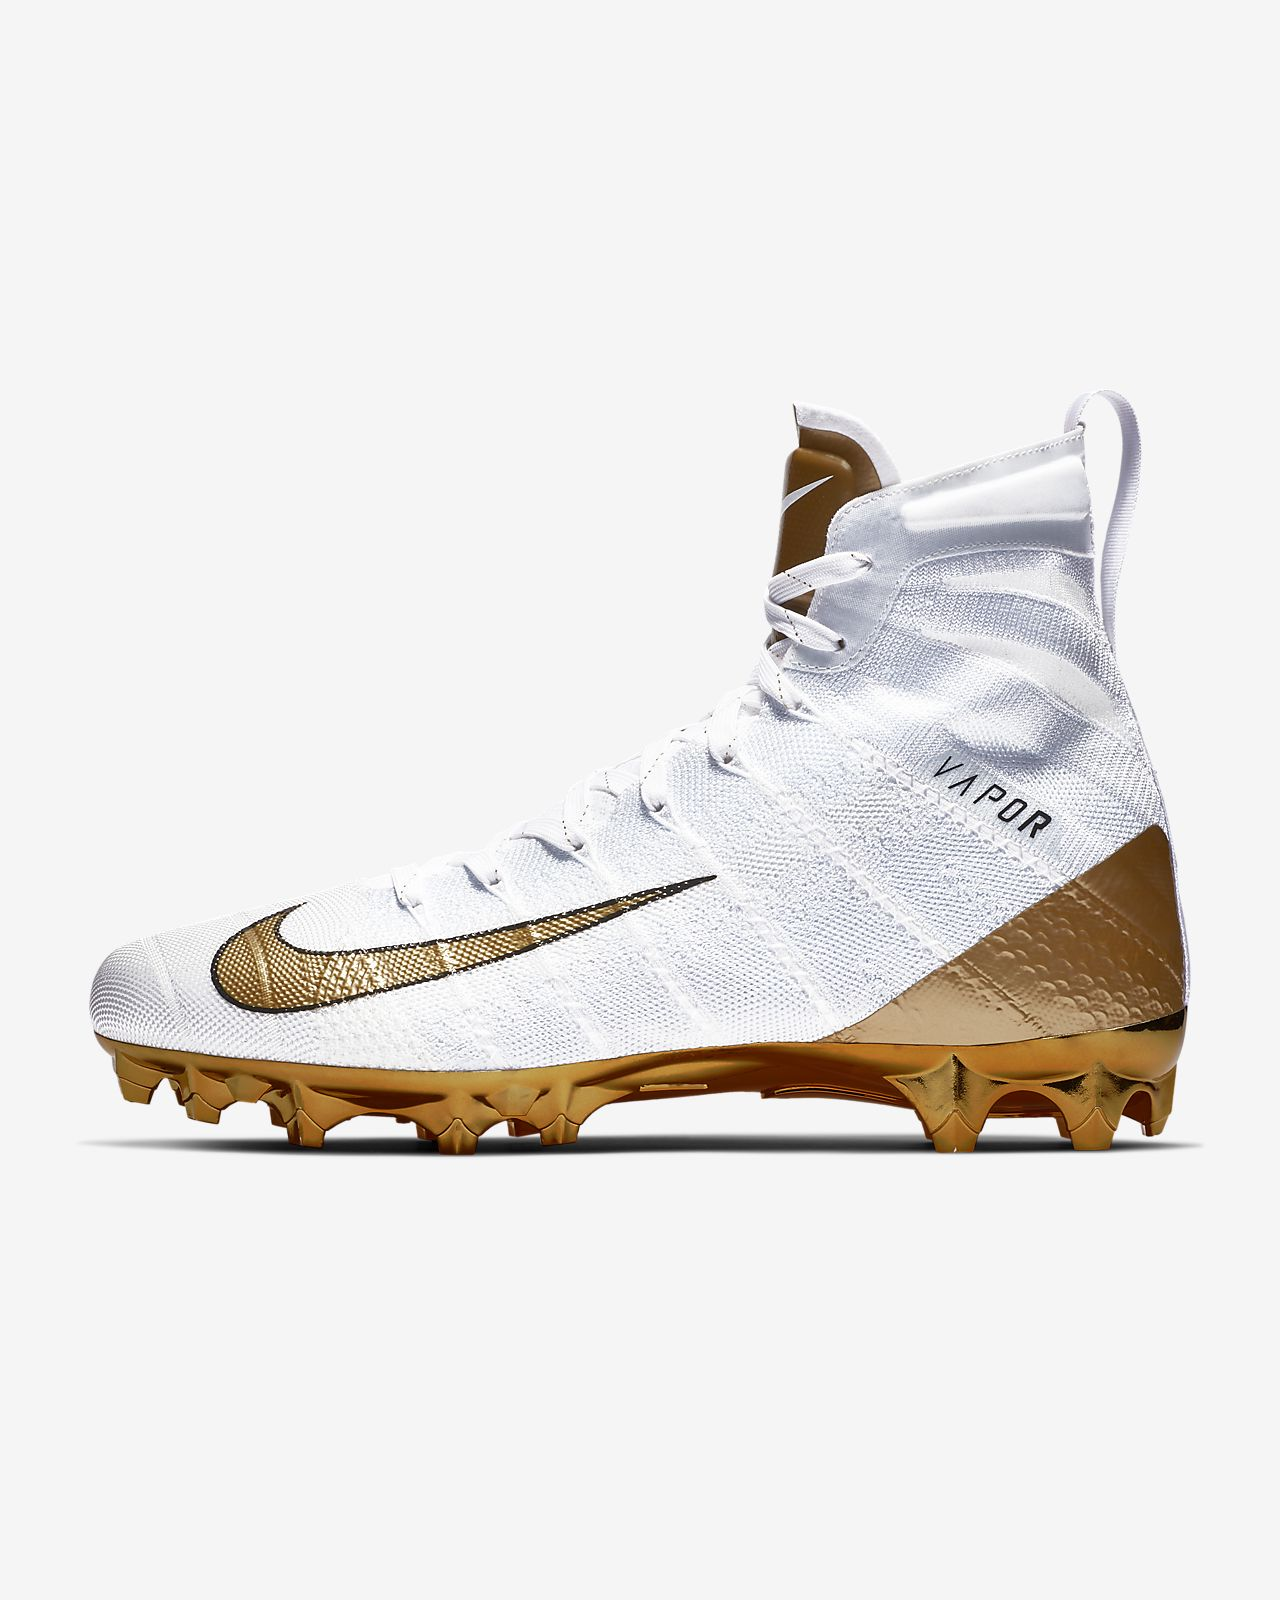 896f8eec9e Nike Vapor Untouchable 3 Elite Football Cleat. Nike.com